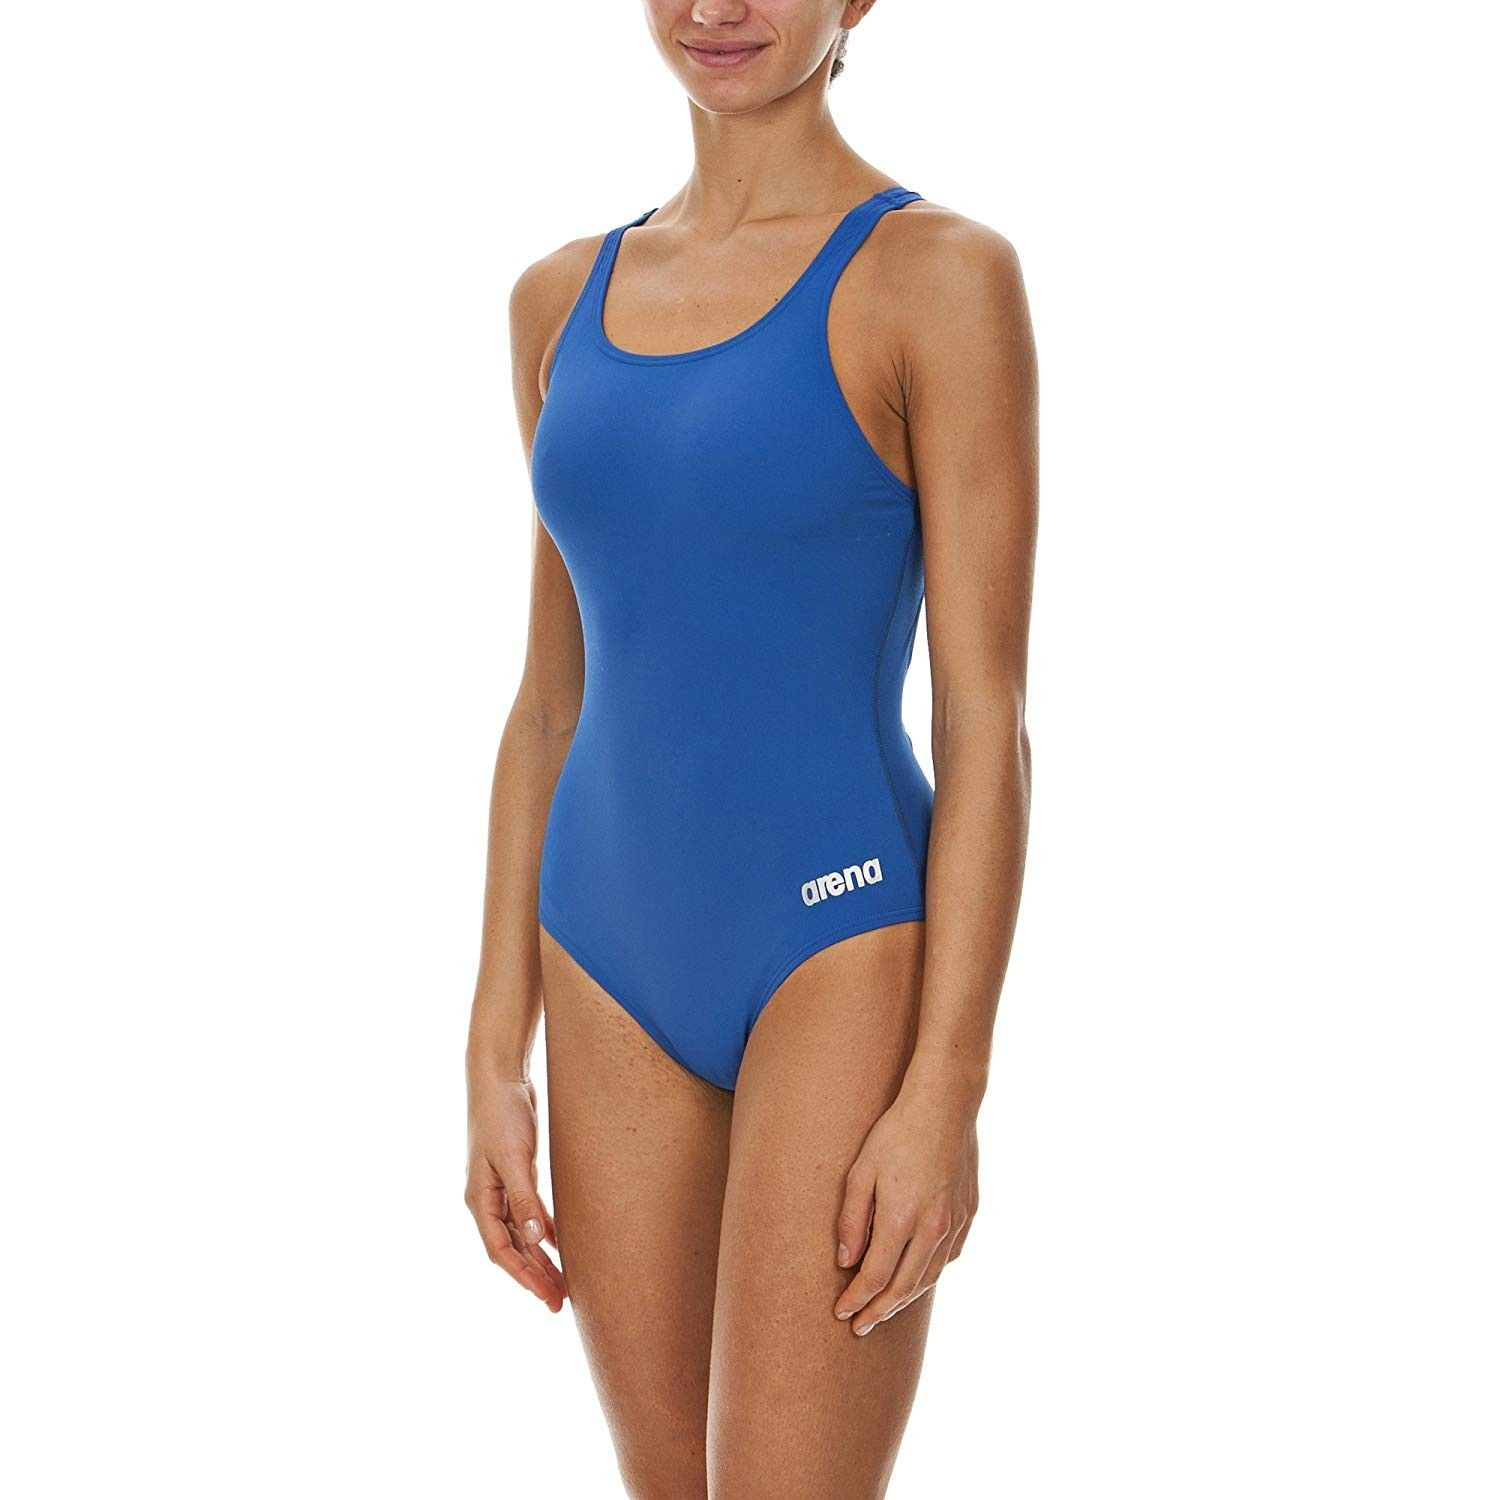 Women's Madison Athletic Thick Strap Racer Back One Piece Swimsuit - Royal/Metallic Silver - Size 36...